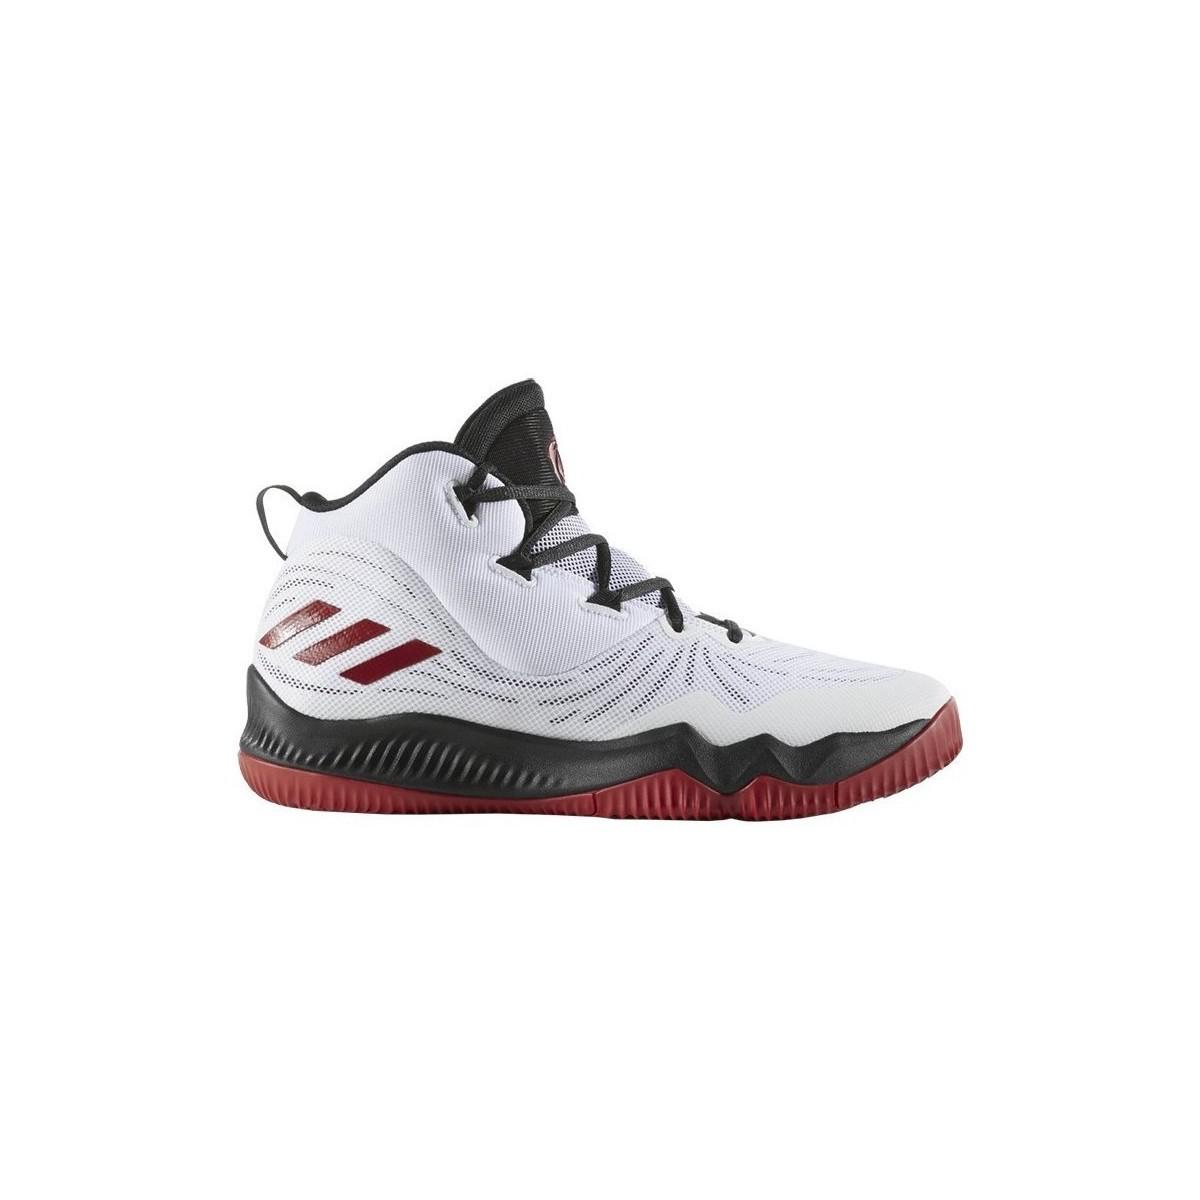 8fe4730e62cb adidas D Rose Dominate Iii Men s Shoes (high-top Trainers) In ...